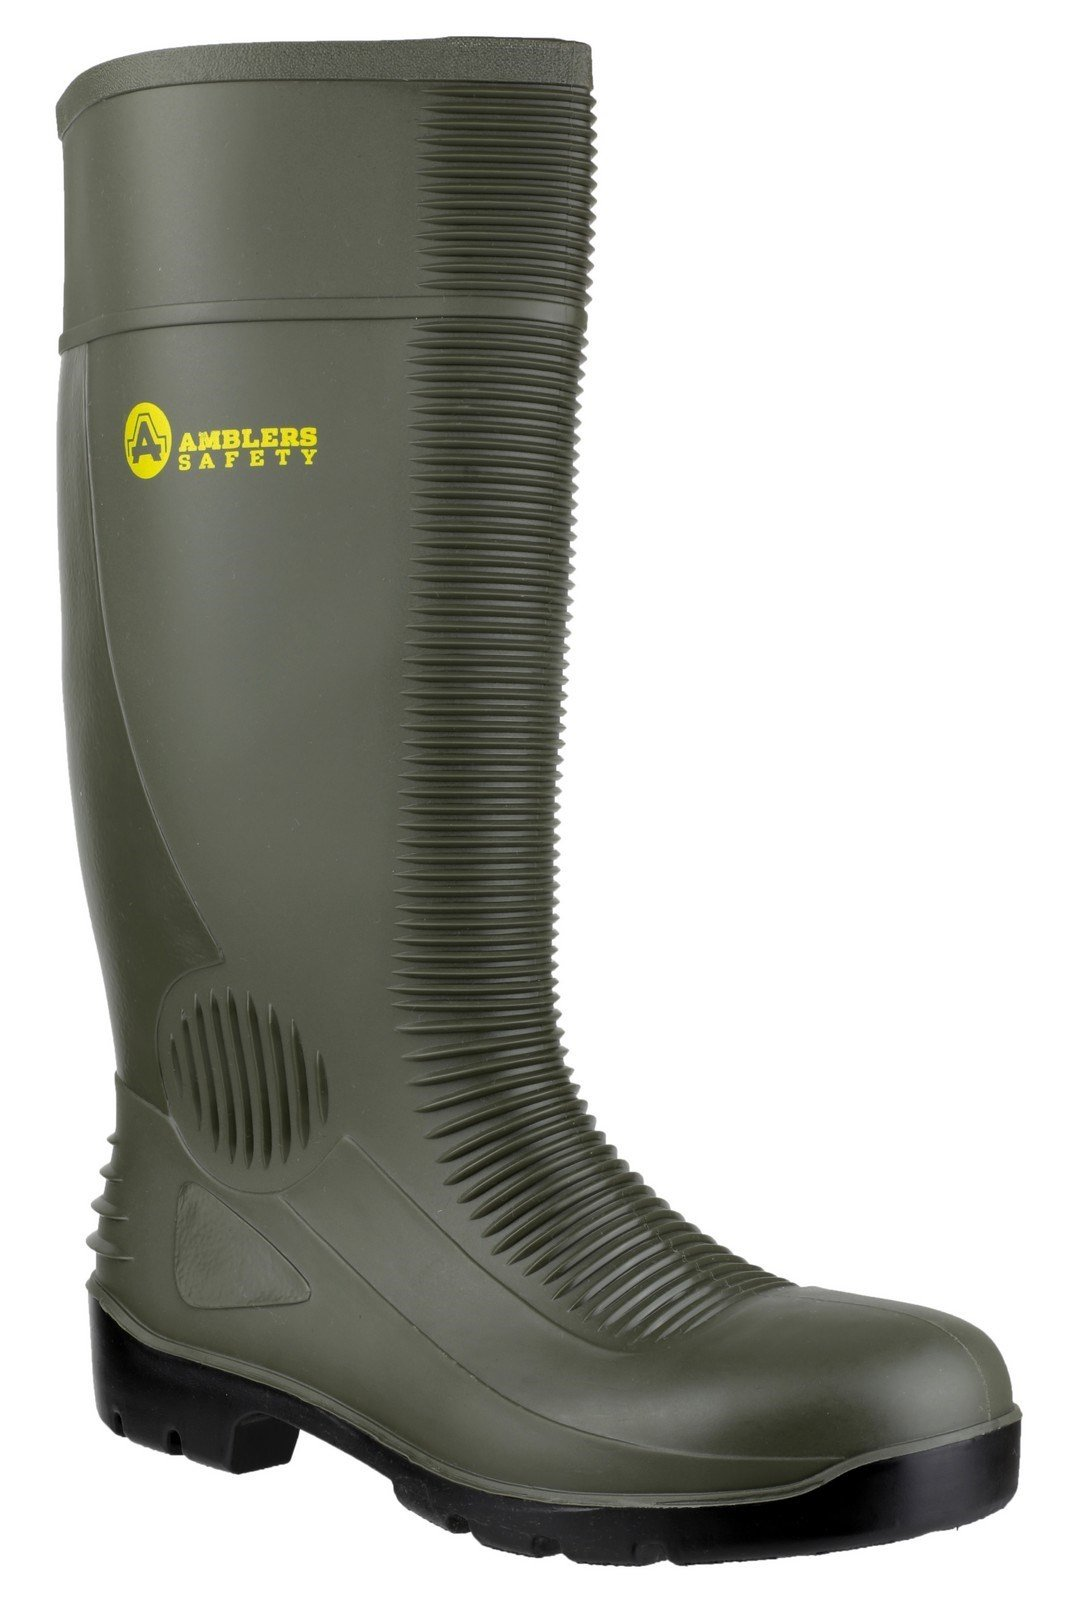 Amblers Unisex Safety Wellington Boot Green 21234 - Green 4